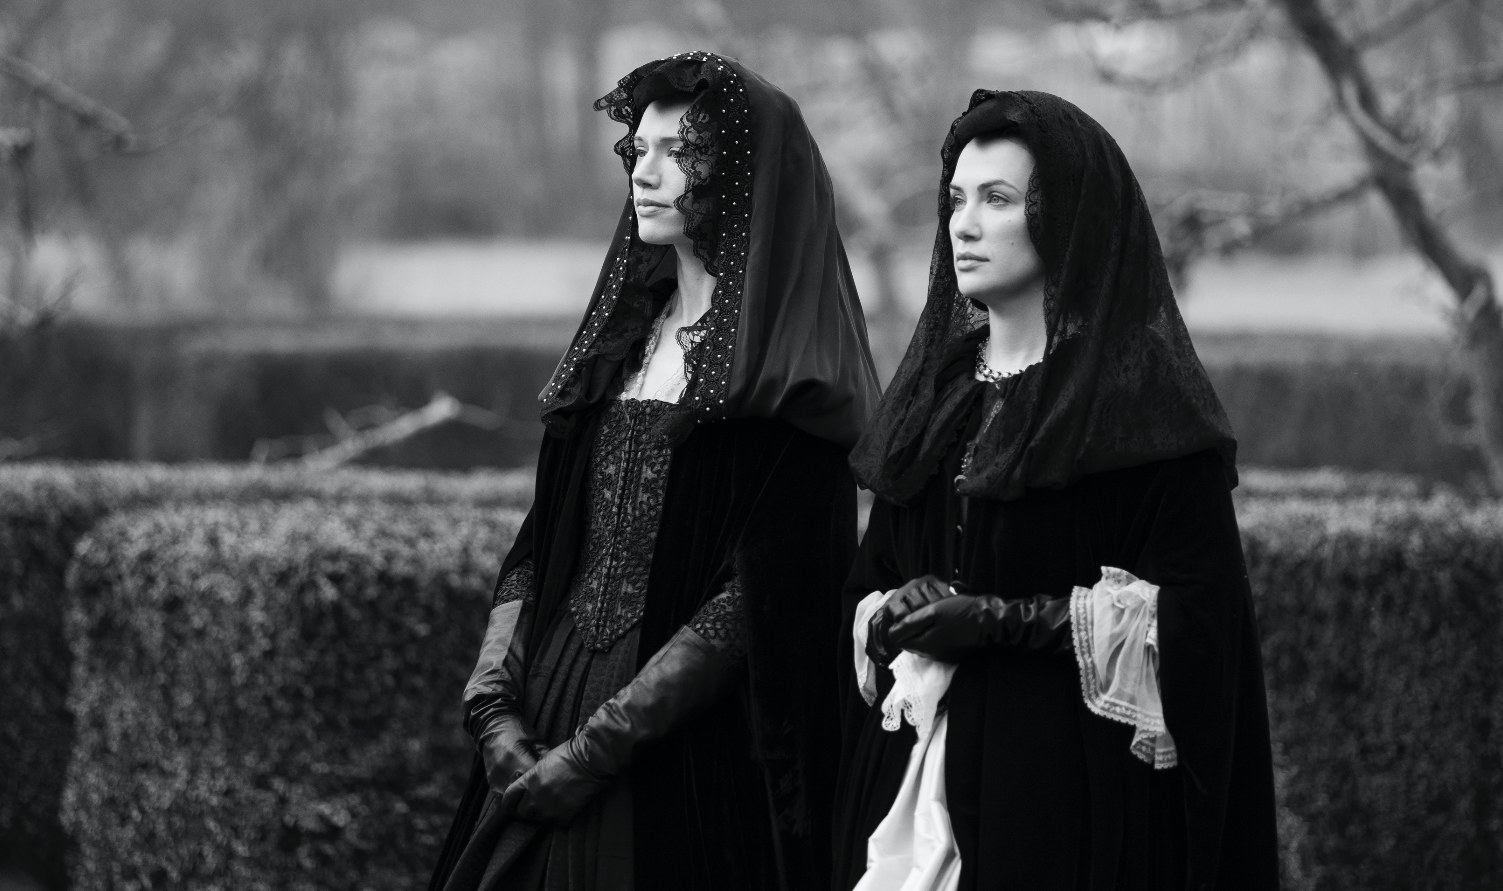 The Haunting of Bly Manor still: in black and white, Perdita and Viola sisters stand in period clothes symbolizing mourning